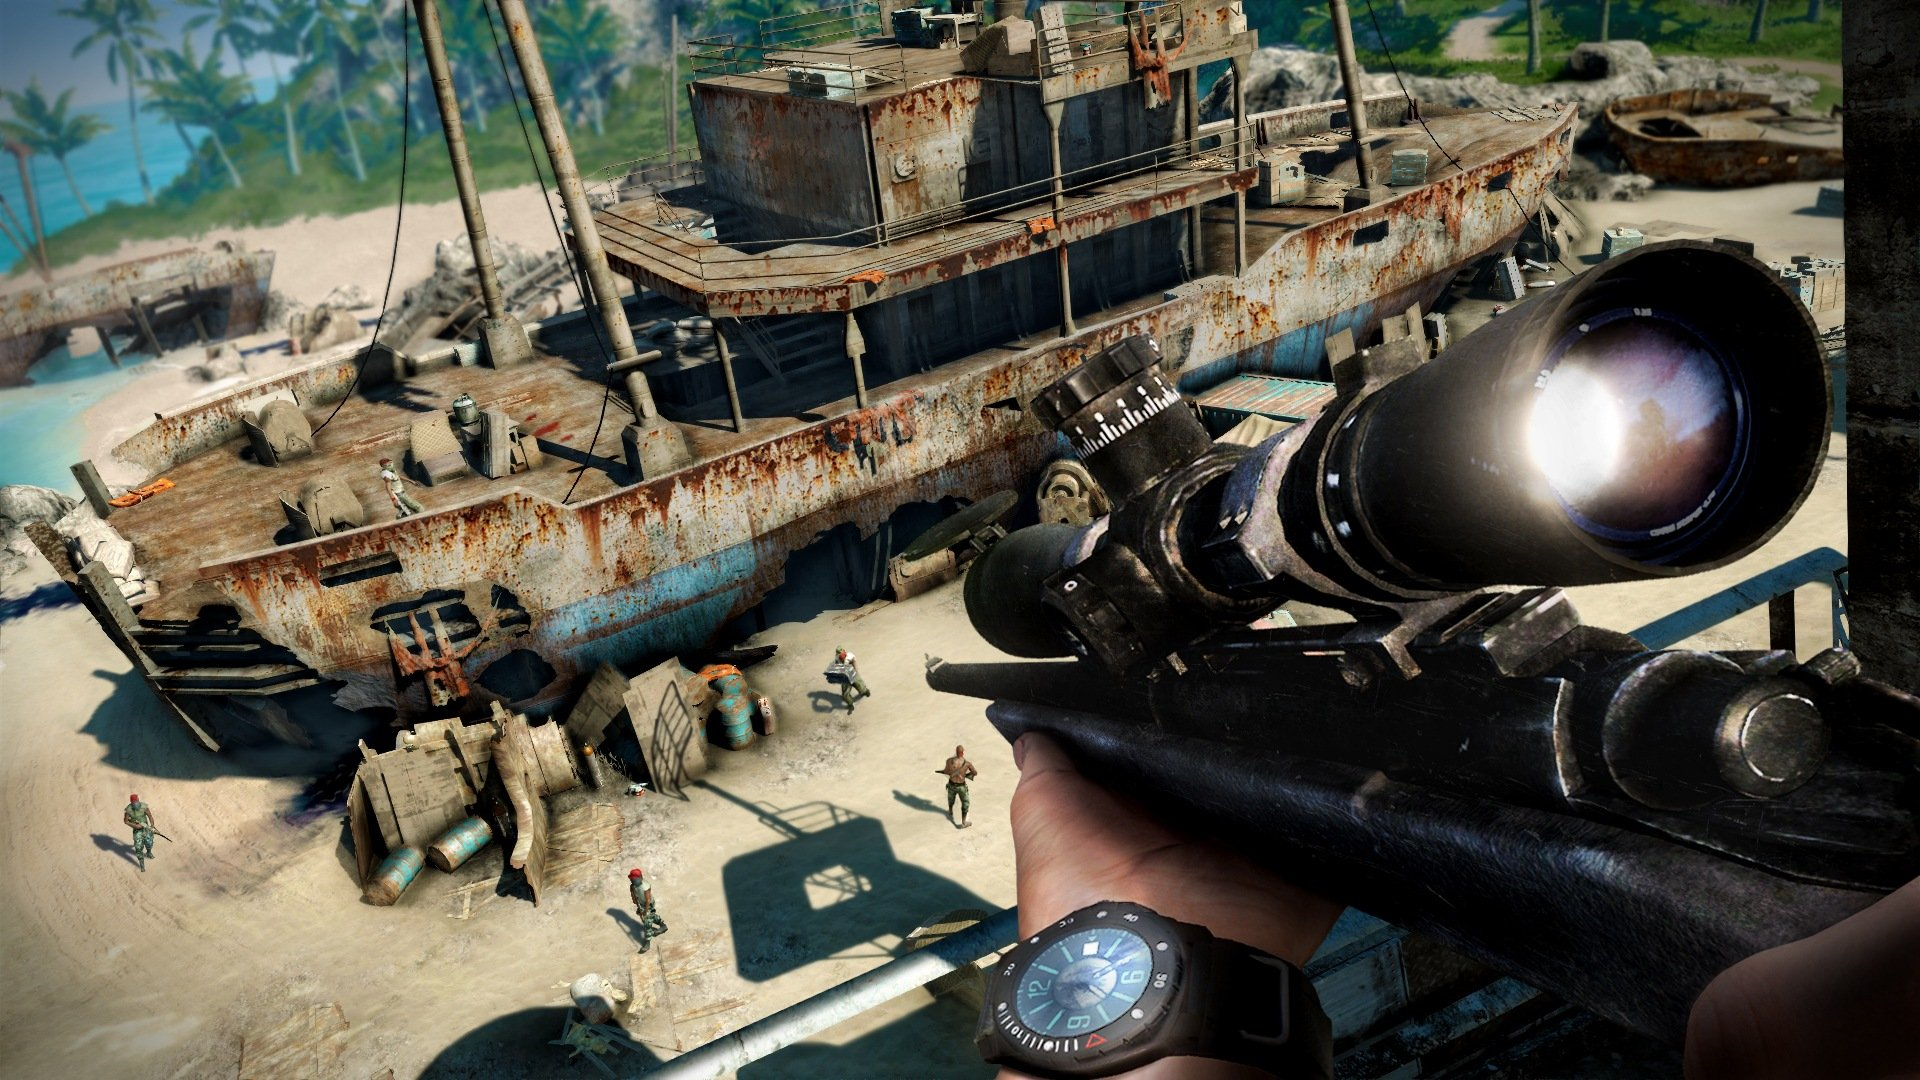 far cry 3 memory card locations map